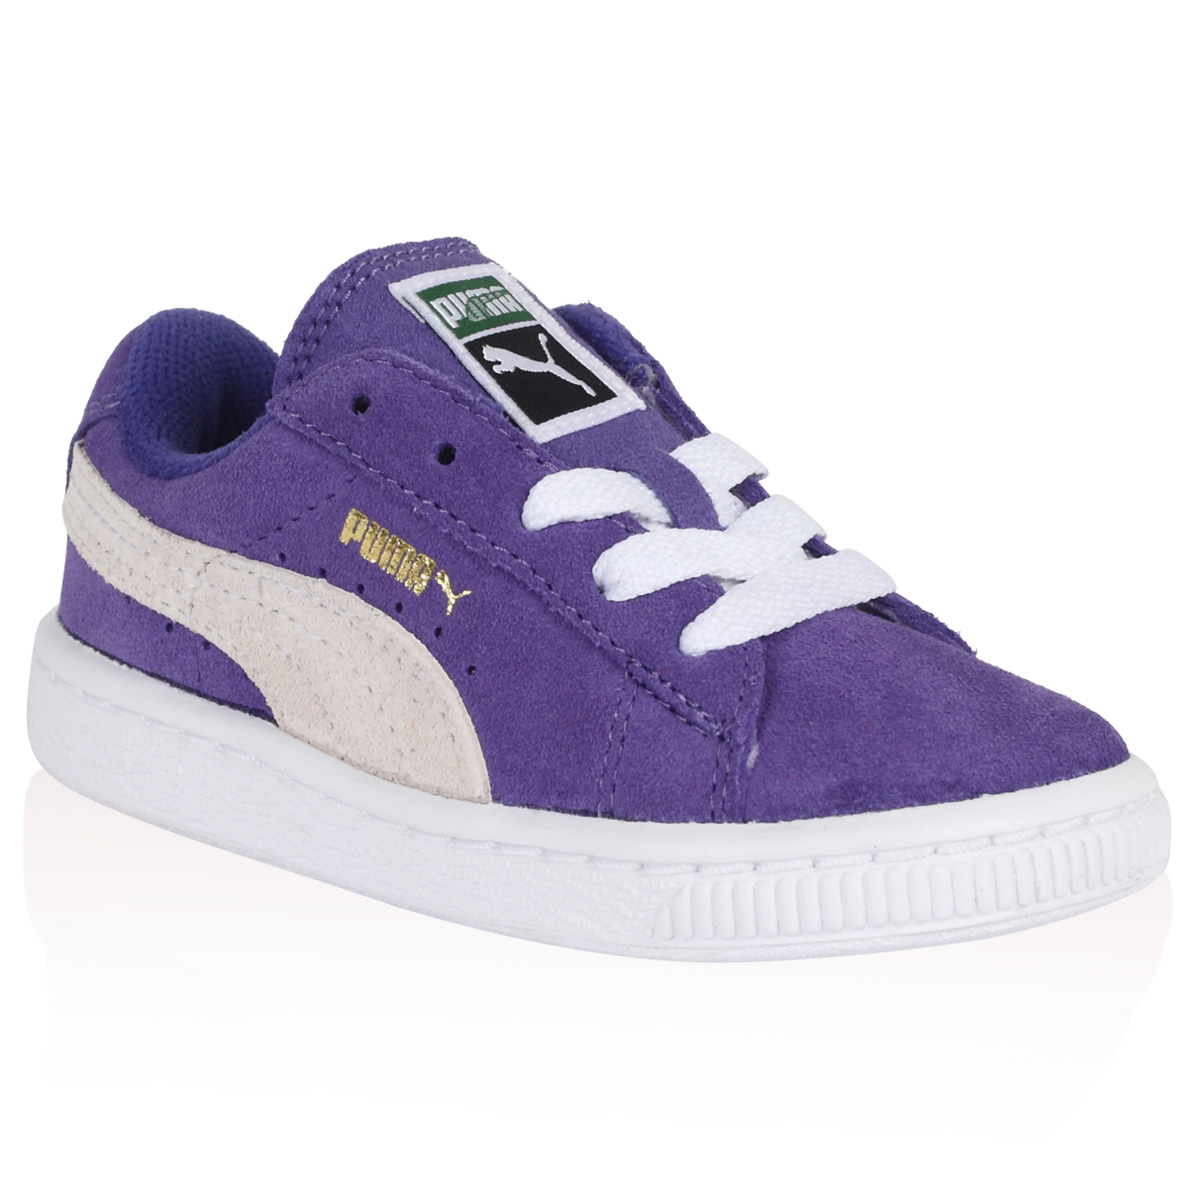 KIDS GIRLS BOYS PUMA LIBERTY PURPLE WHITE SUEDE LACE UP ...